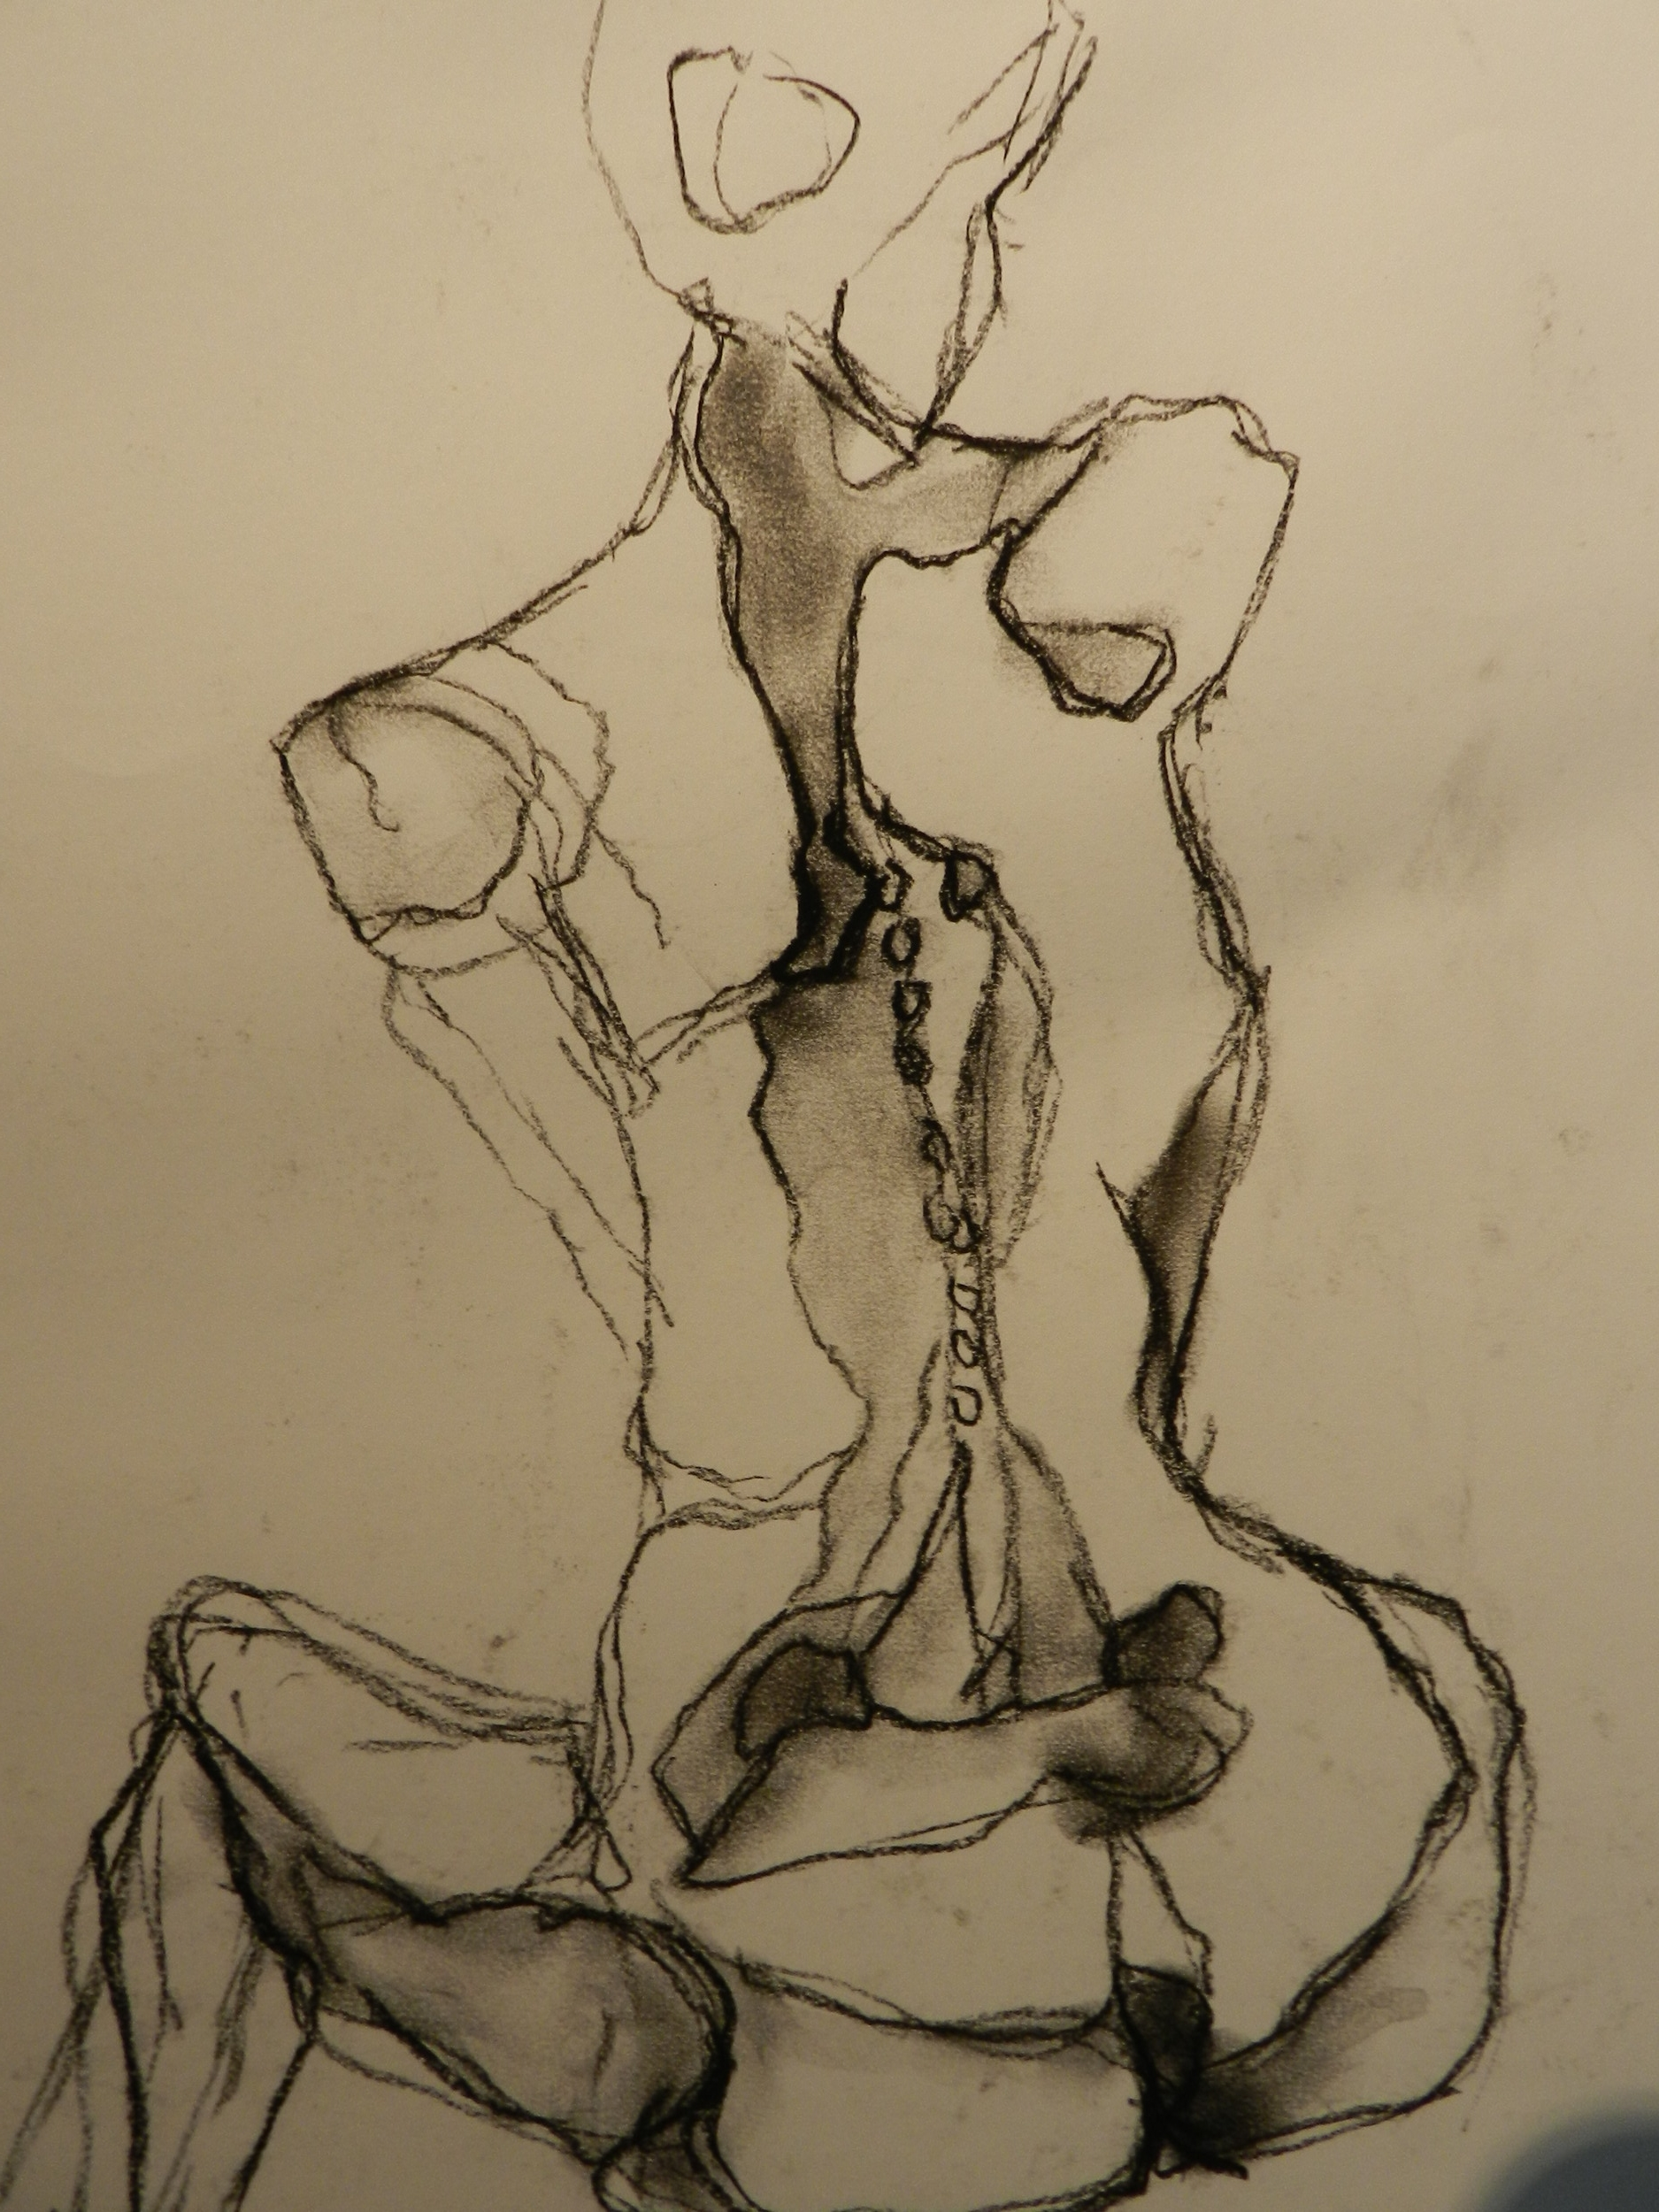 Ccharcoal on paper. 2011